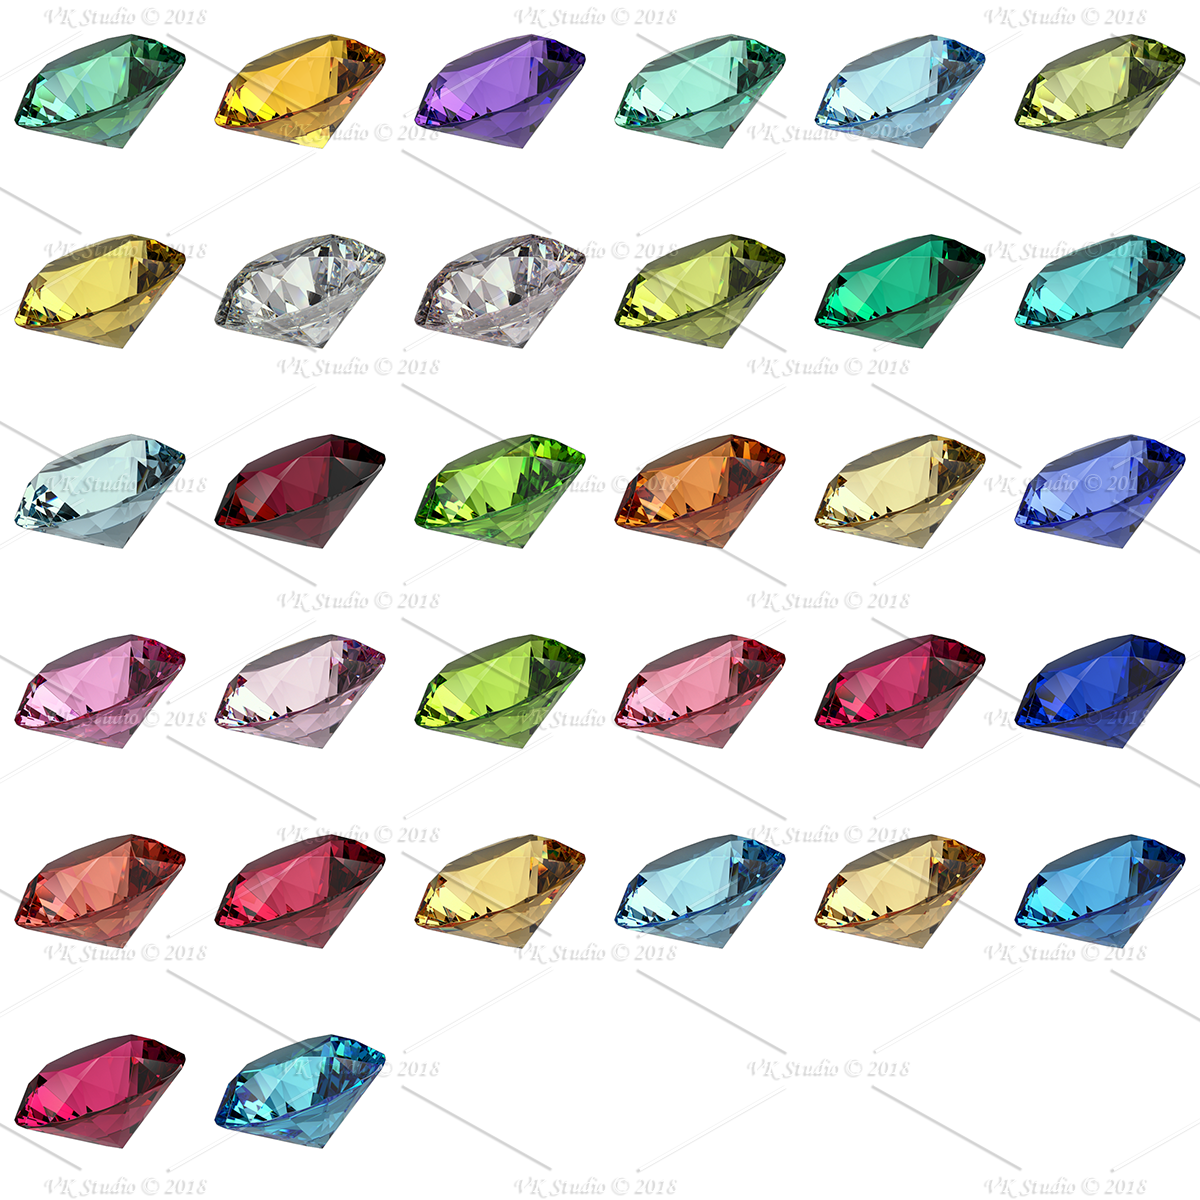 gemstone materials starter for v-ray and 3ds max 3d model max  283380